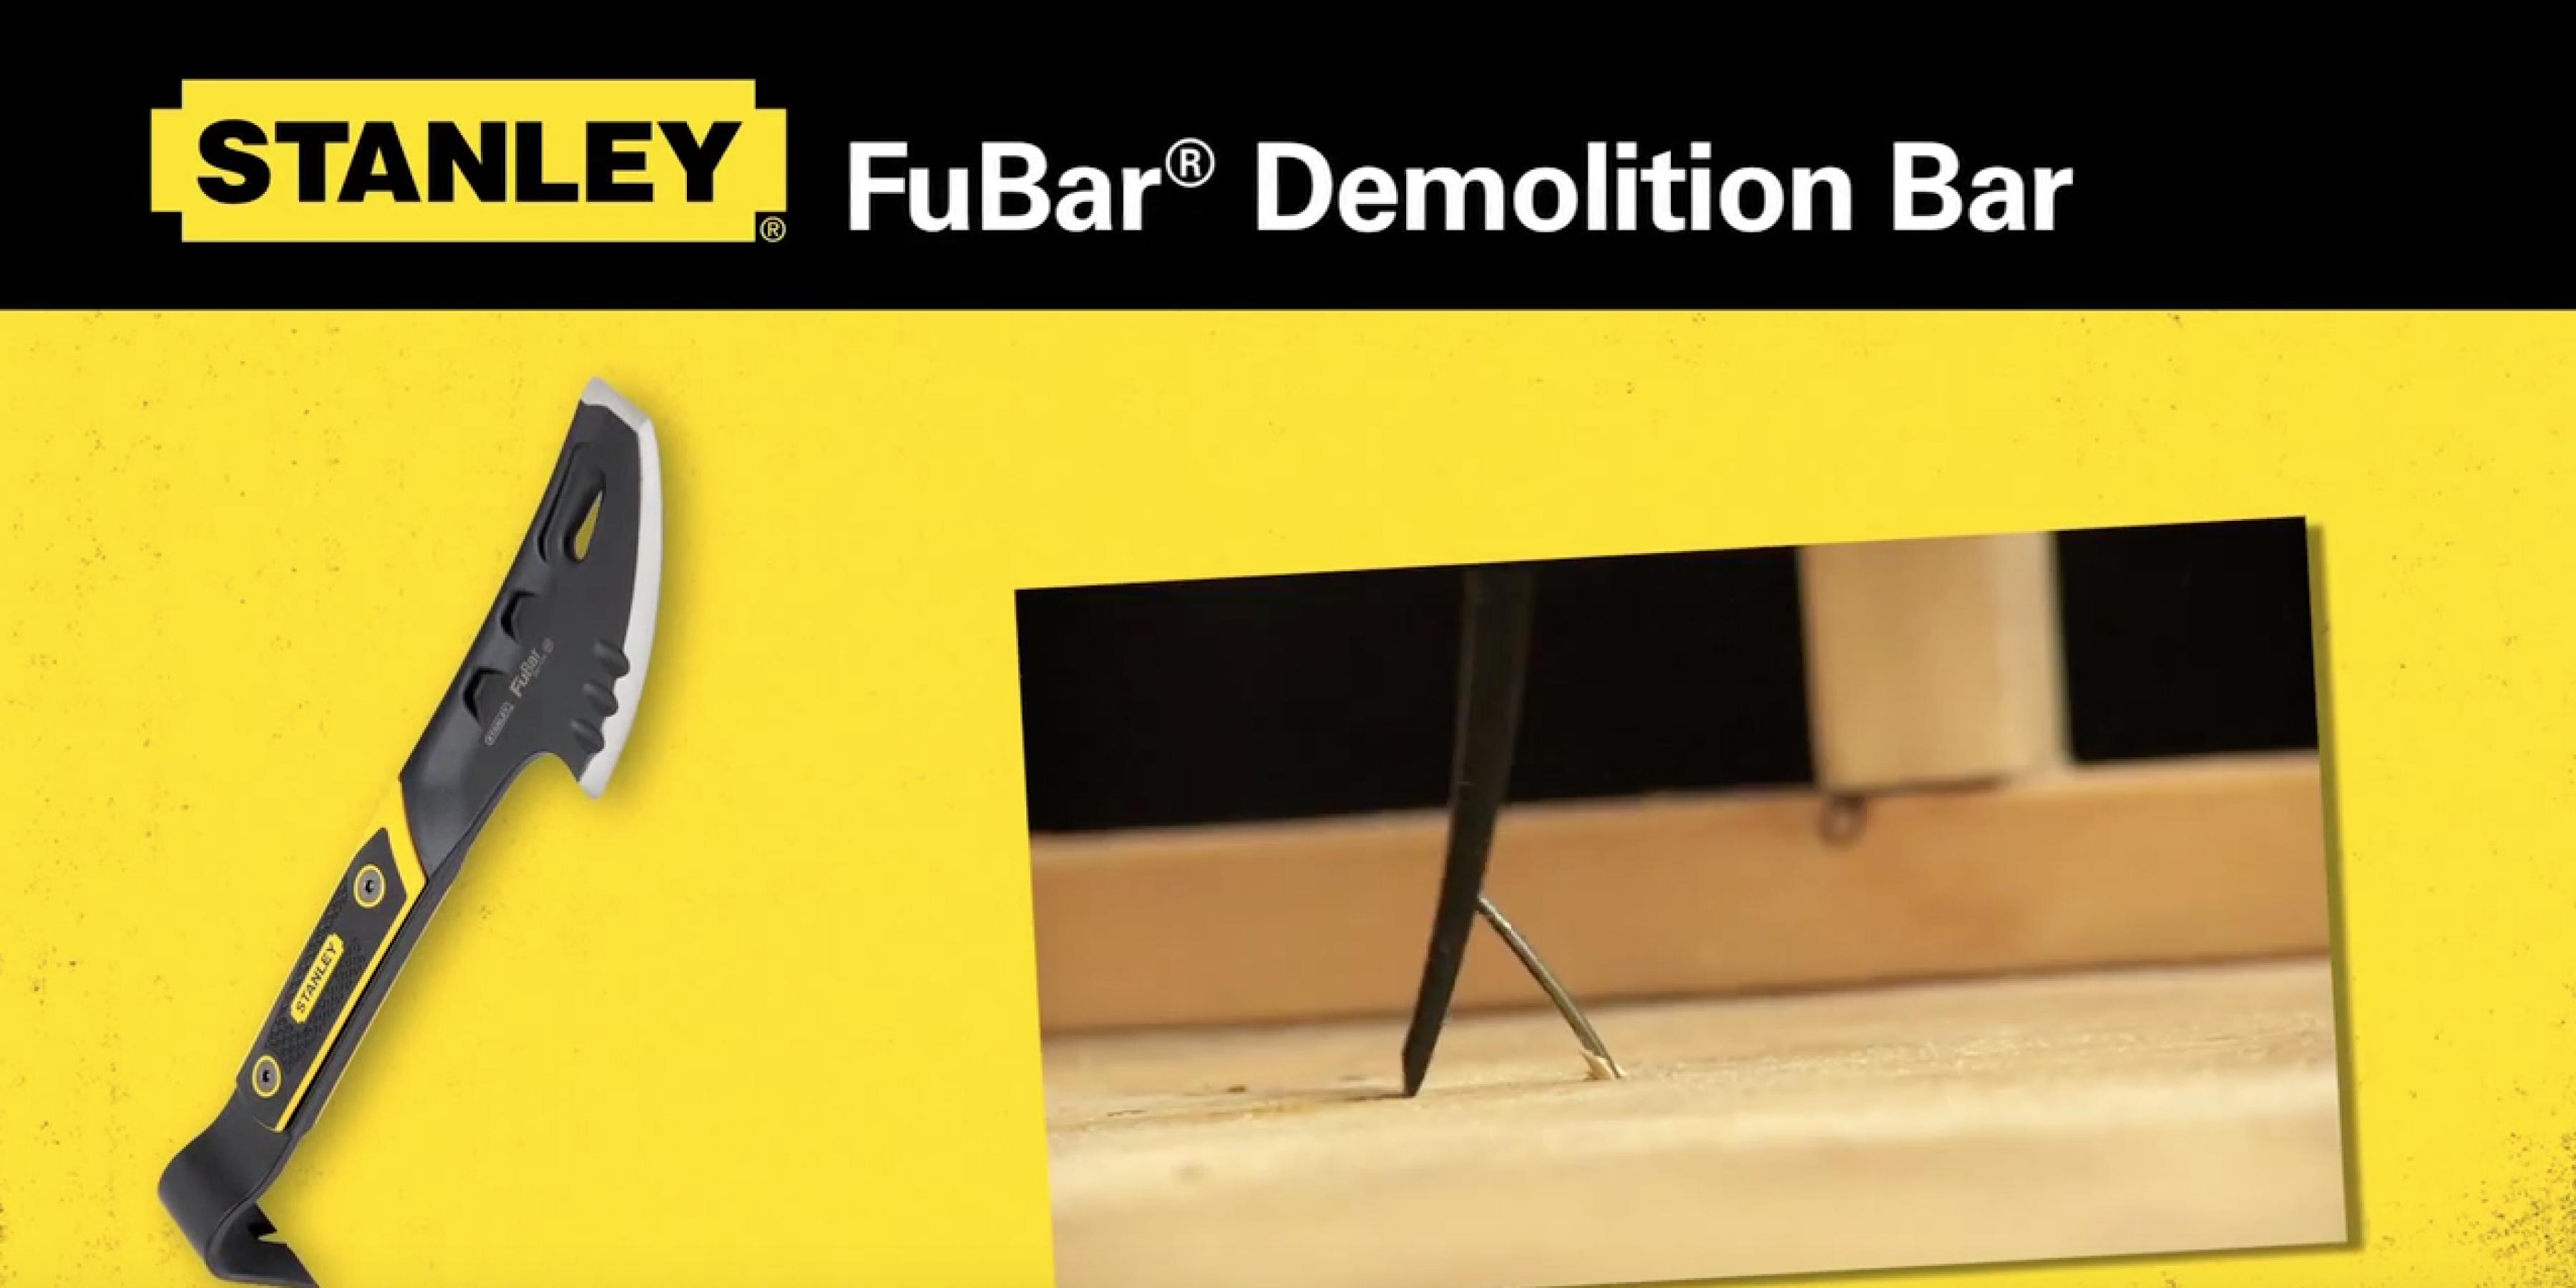 Stanley Fubar Demolition Bar